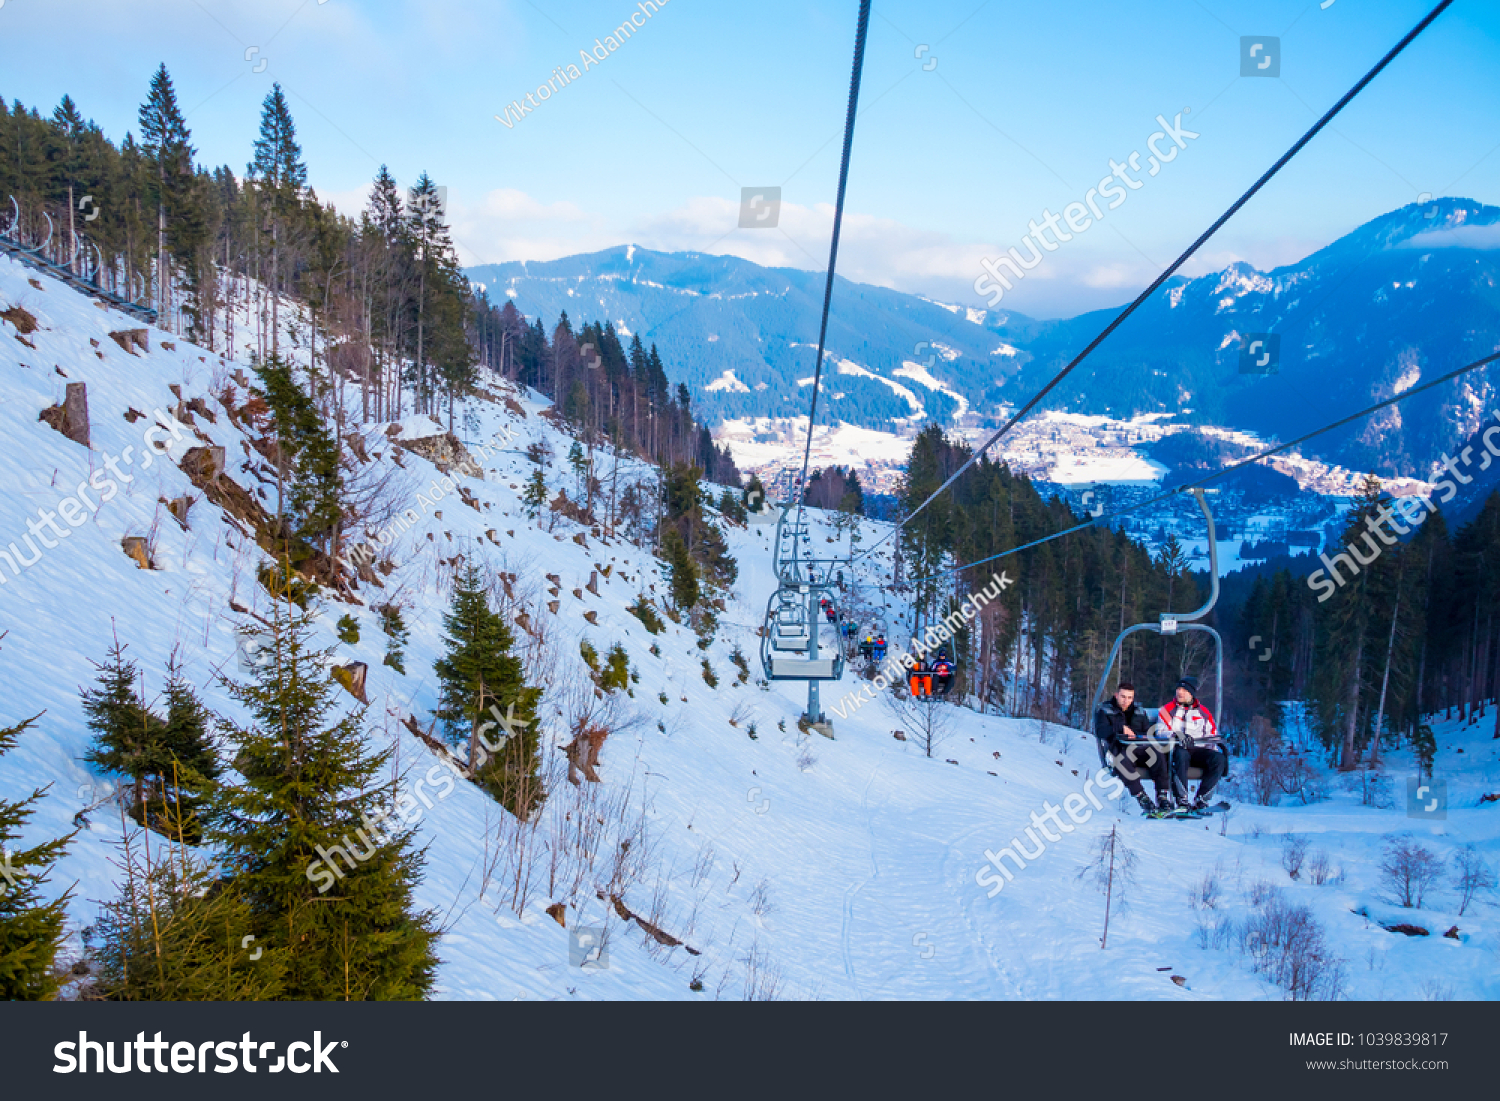 oberammergau germany january 13 2018 ski lift stock photo (edit now